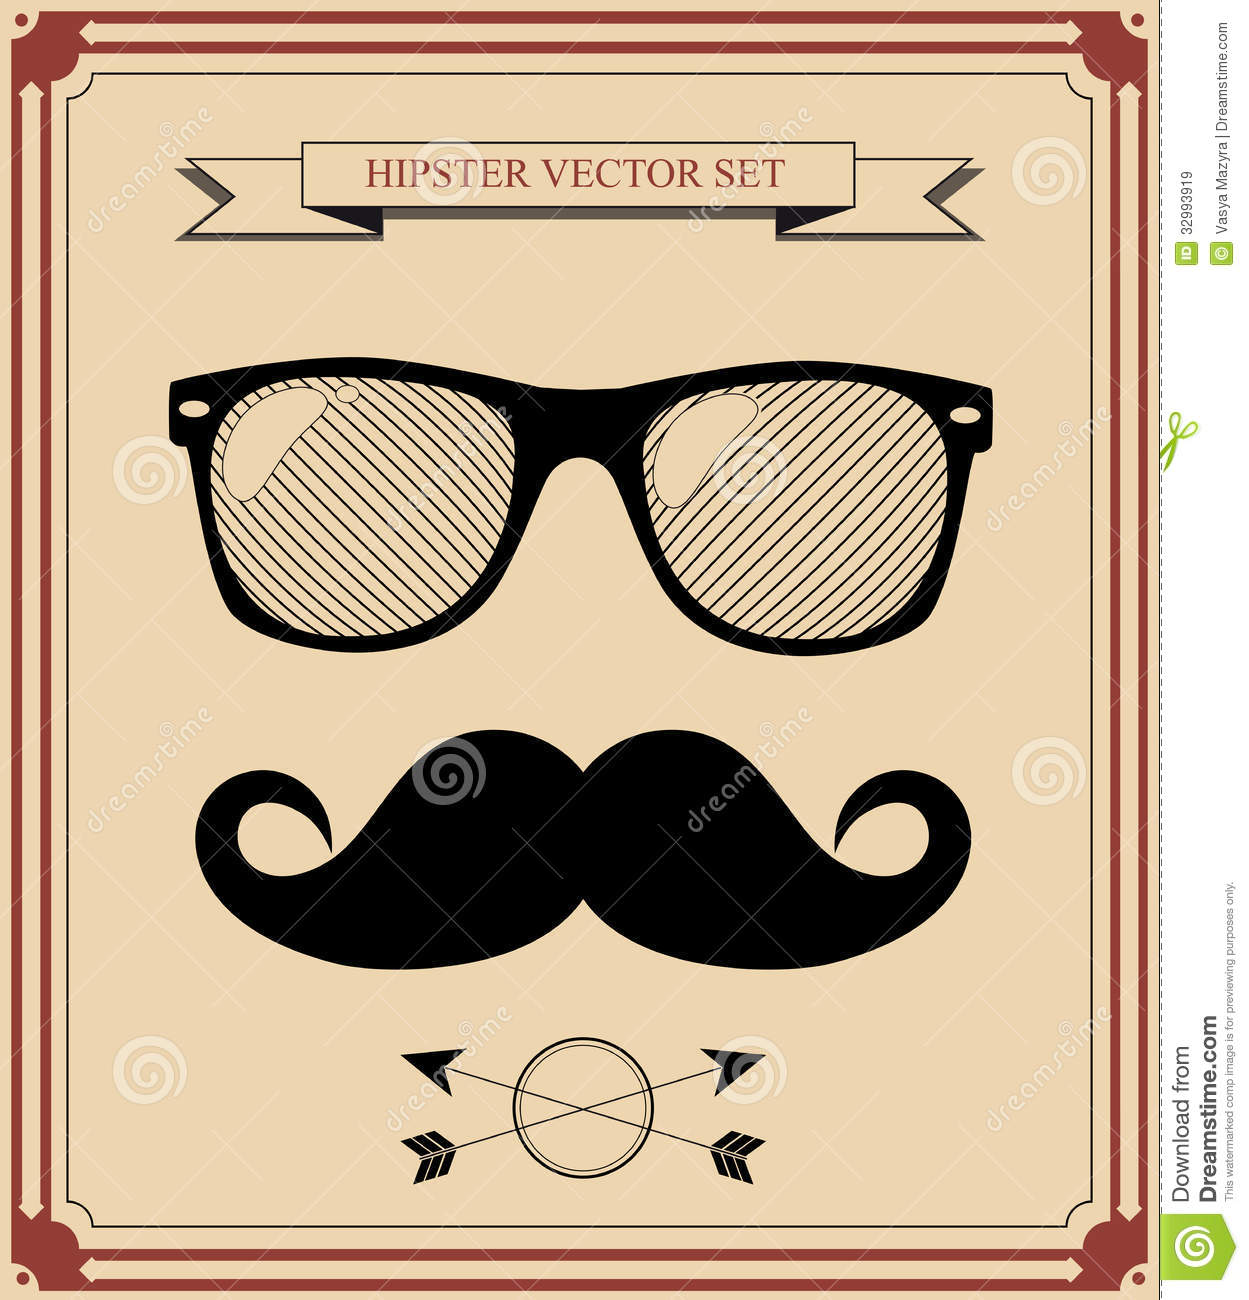 Set Of Hipster Man Style Graphic Elements Illust Royalty Free Stock Images Image 32993919